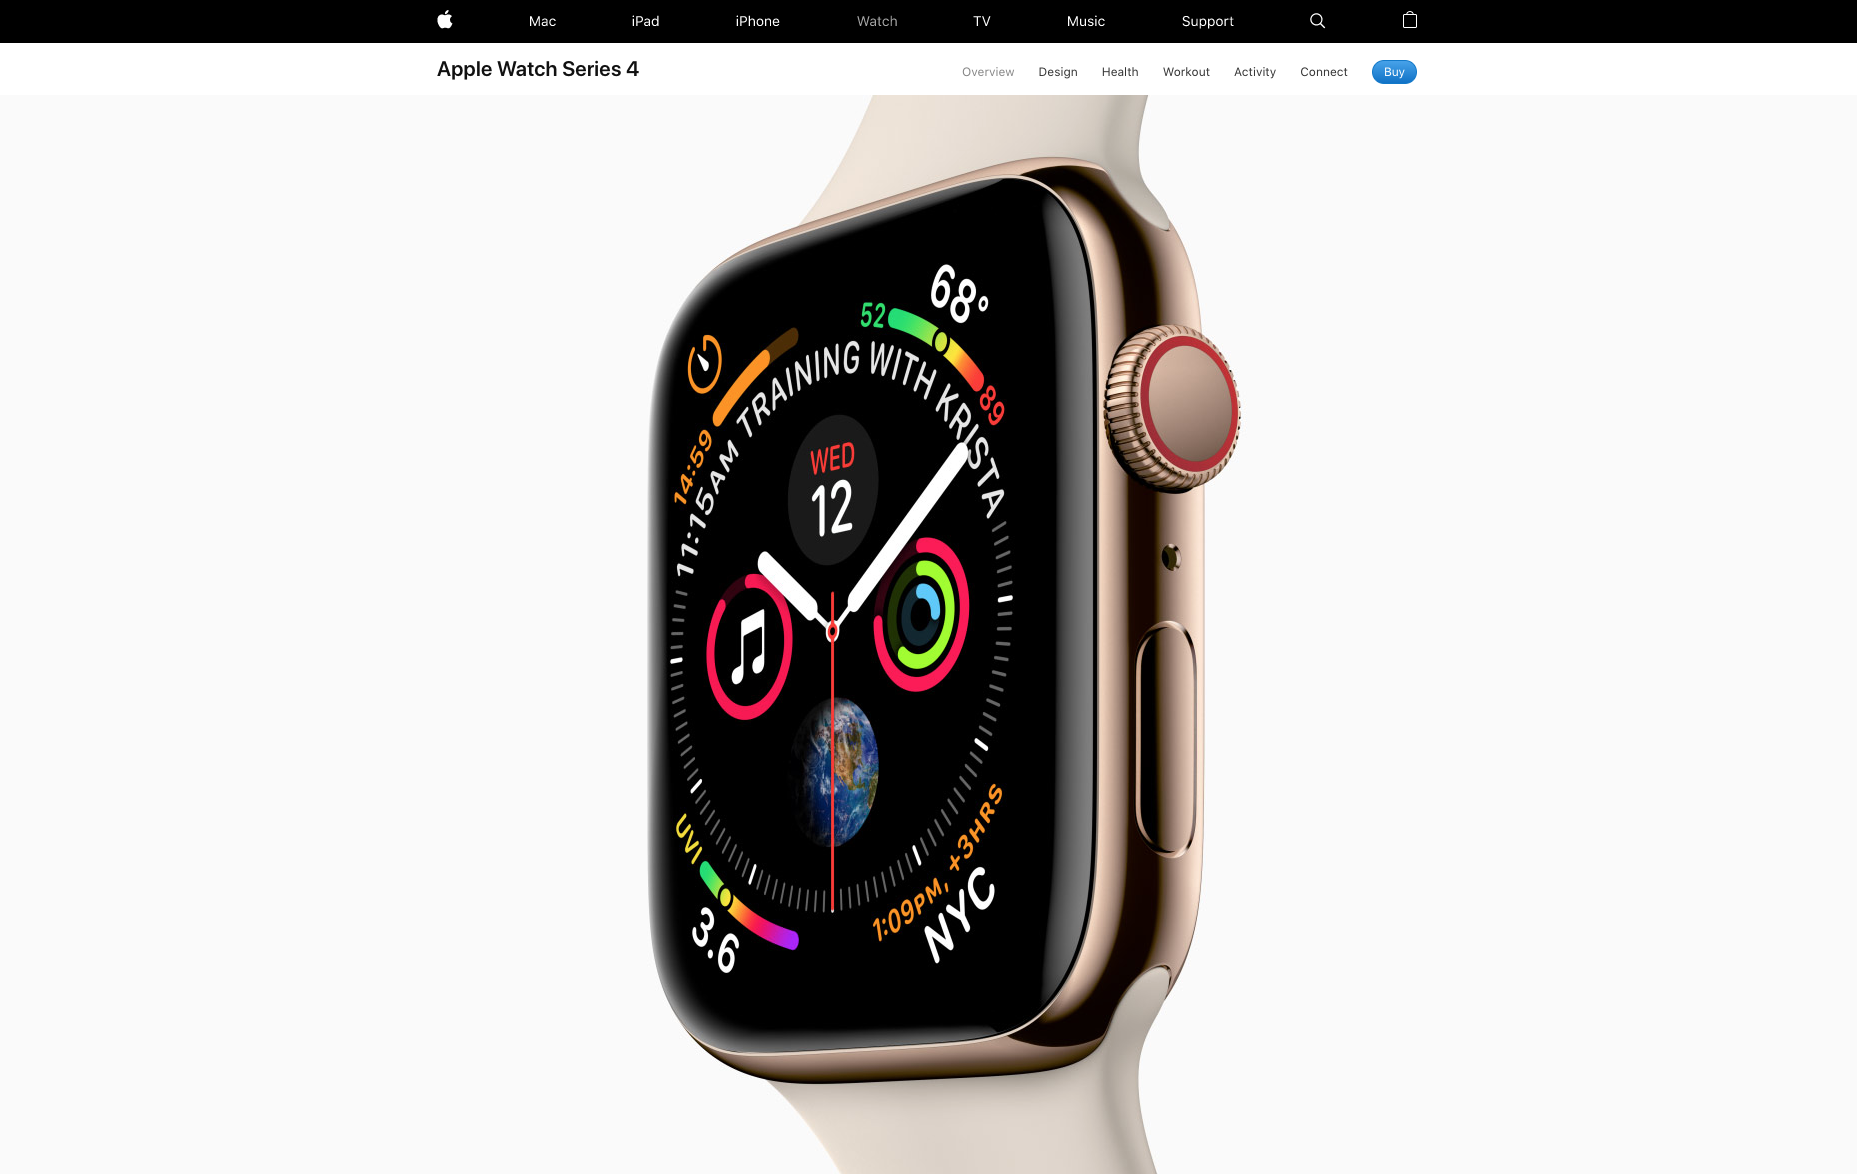 Click on the image above to see the full Apple Watch Product Detail Page.